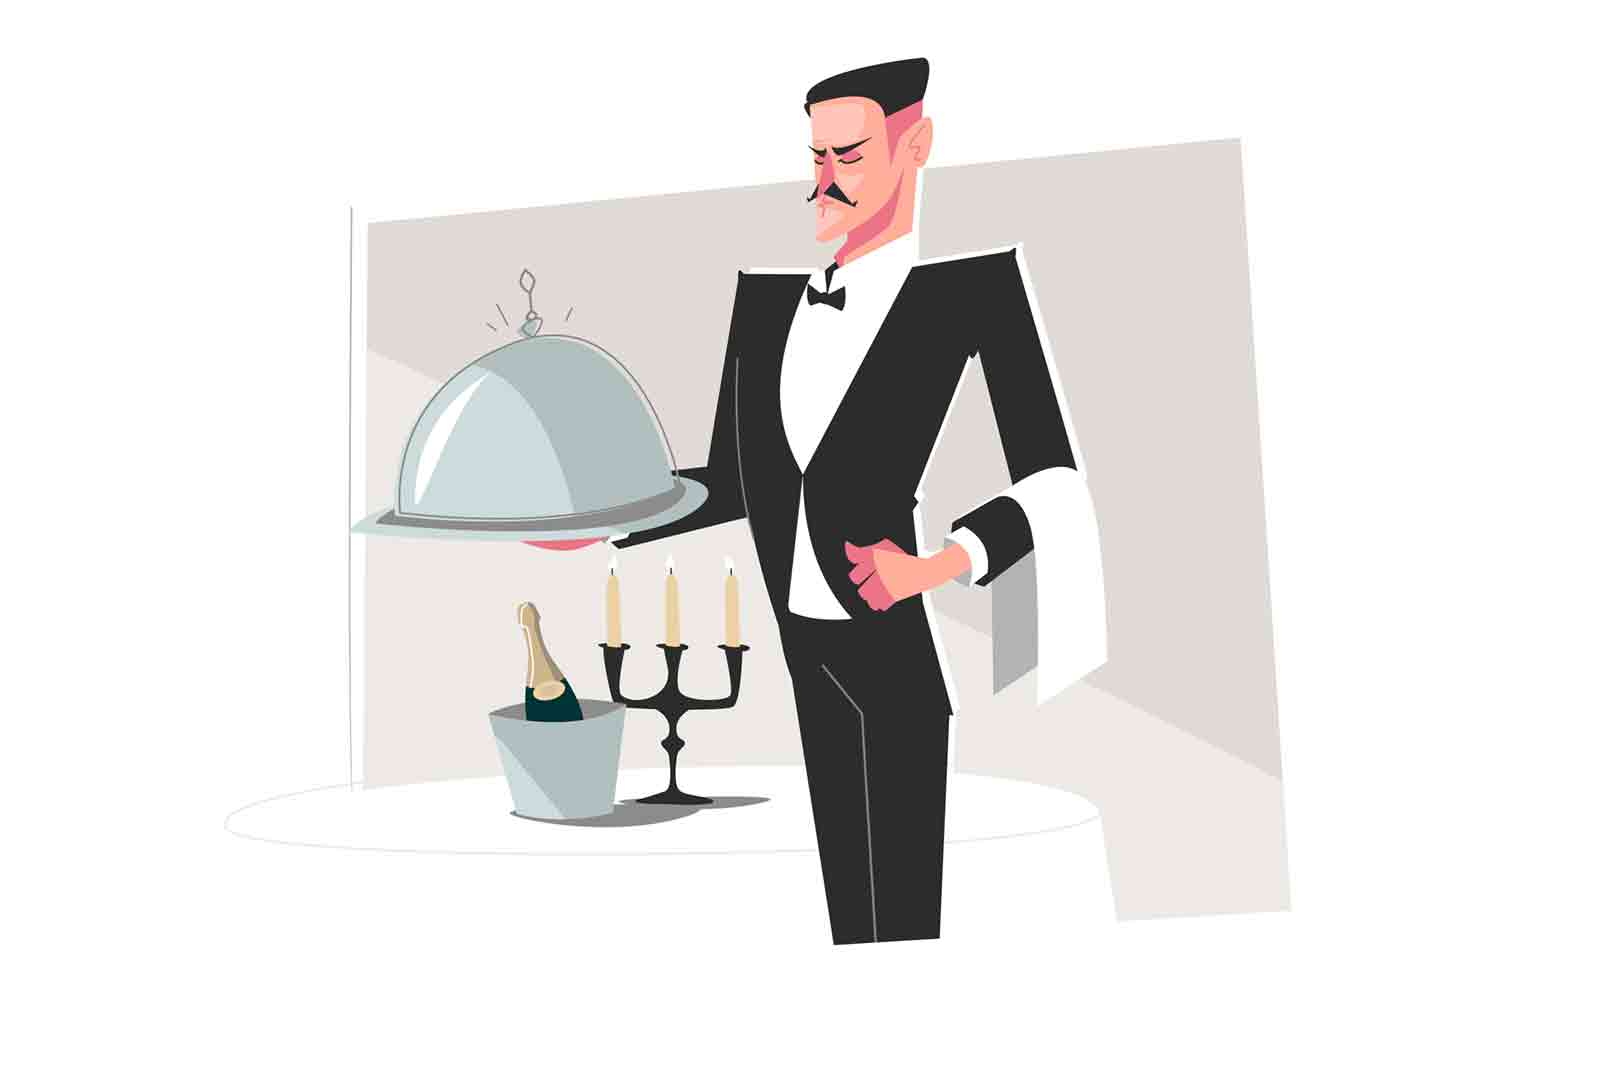 Man butler in suit vector illustration. Professional butler dressed in tuxedo serving tray with luxury food flat style. Welcoming stylised waiter and good service concept. Isolated on white background